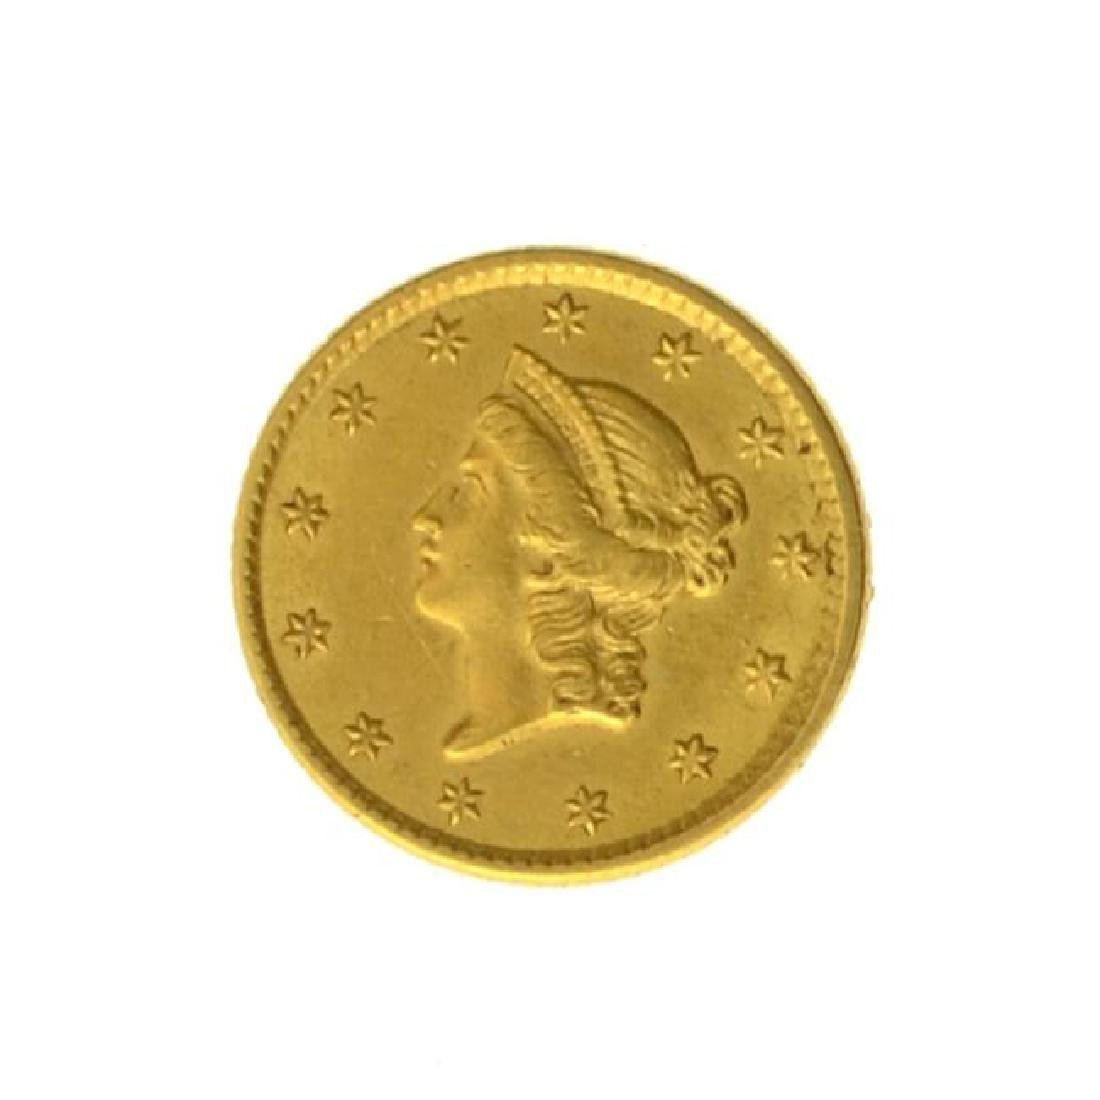 1853 $1 U.S. Liberty Head Gold Coin - Great Investment